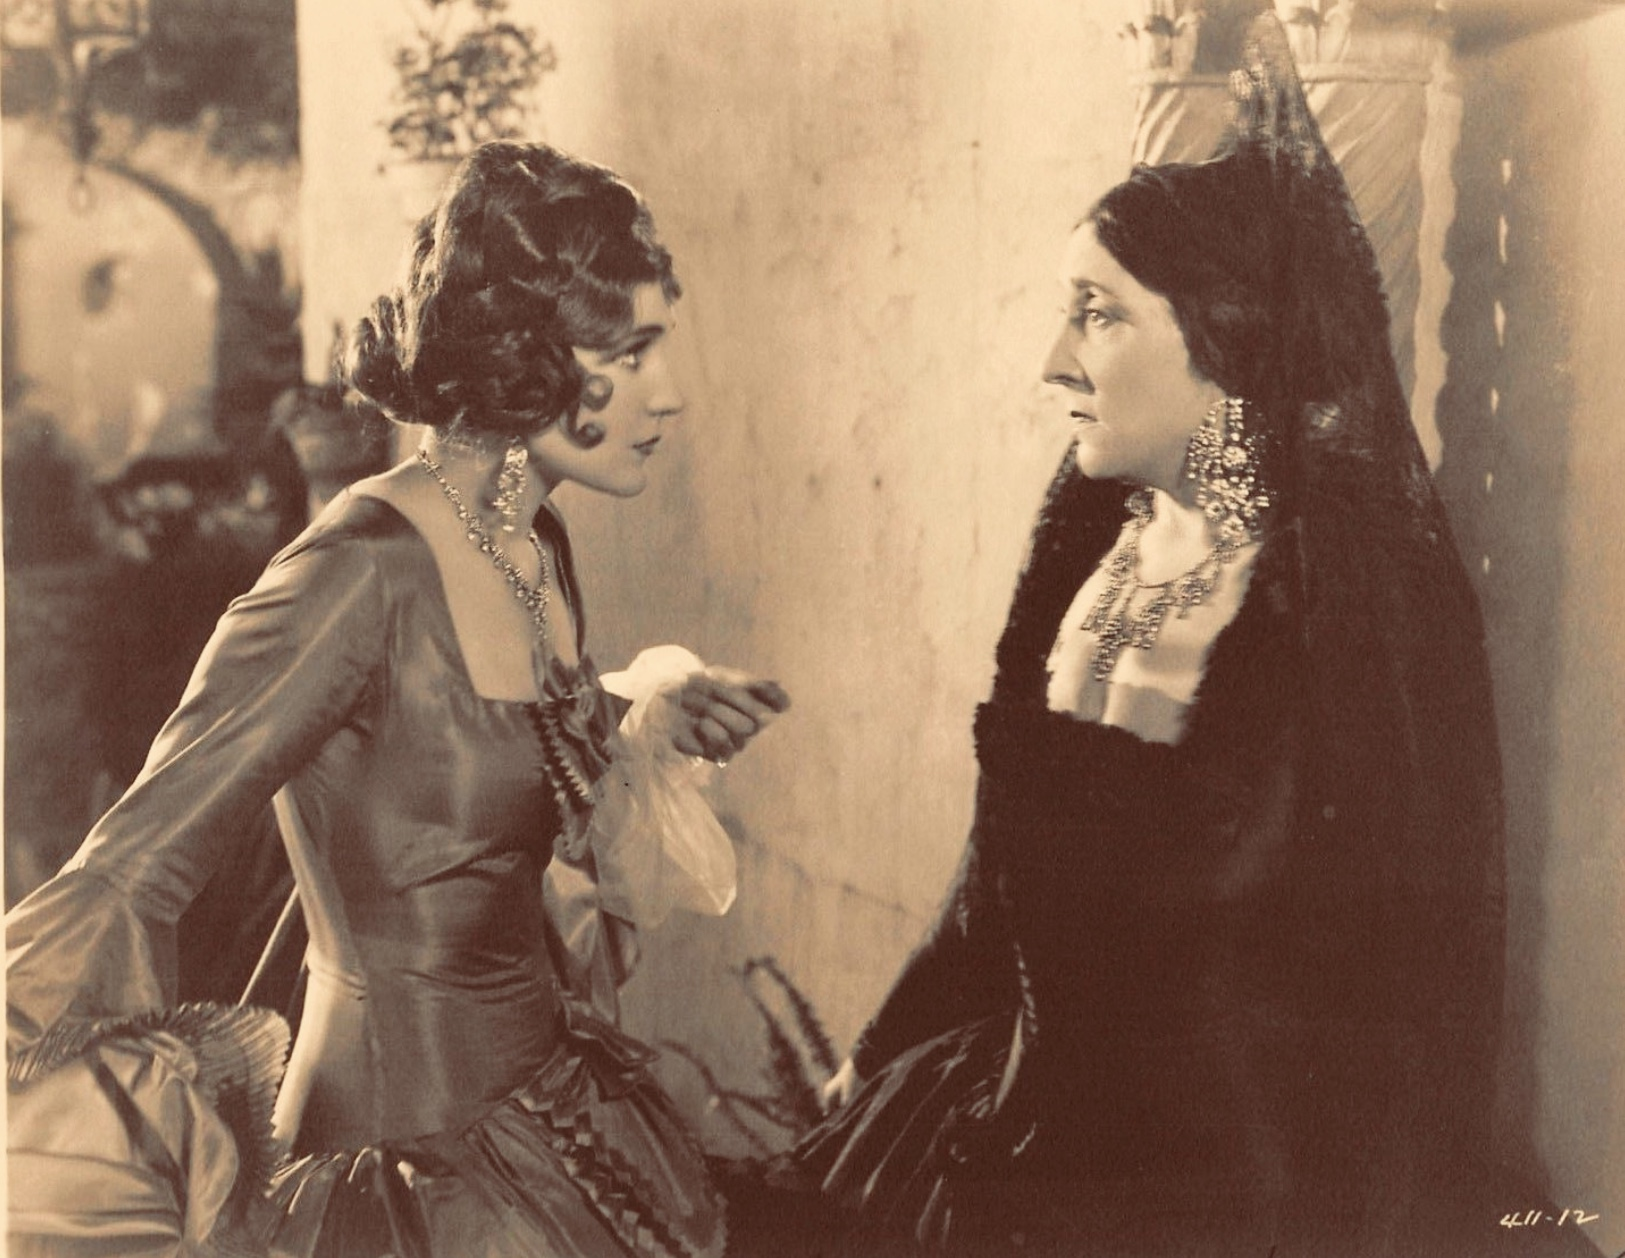 Emily Fitzroy and Jane Winton in The Bridge of San Luis Rey (1929)